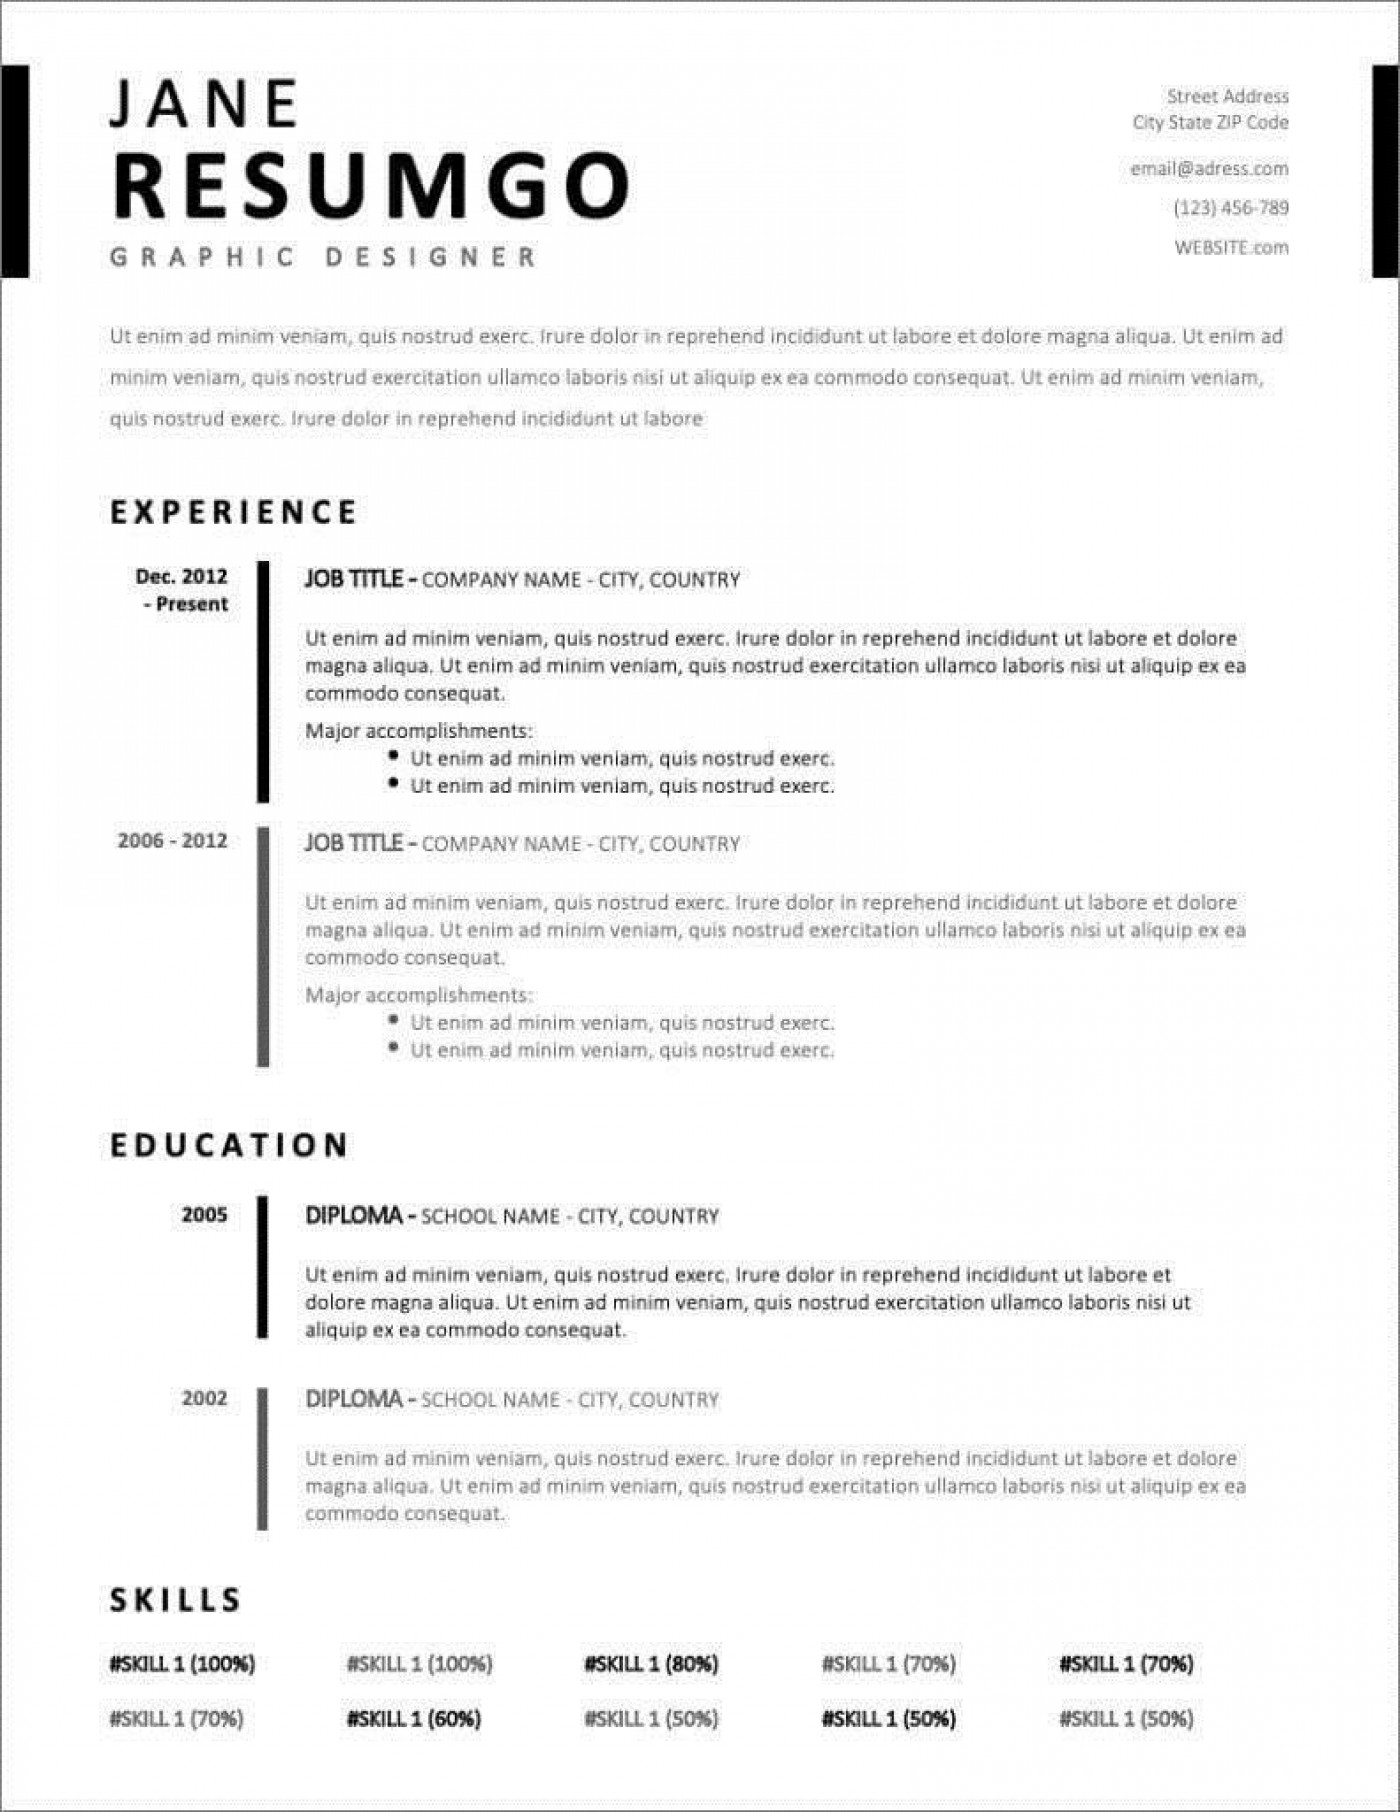 003 Wonderful Download Resume Template Free Example  For Mac Best Creative Professional Microsoft Word1400